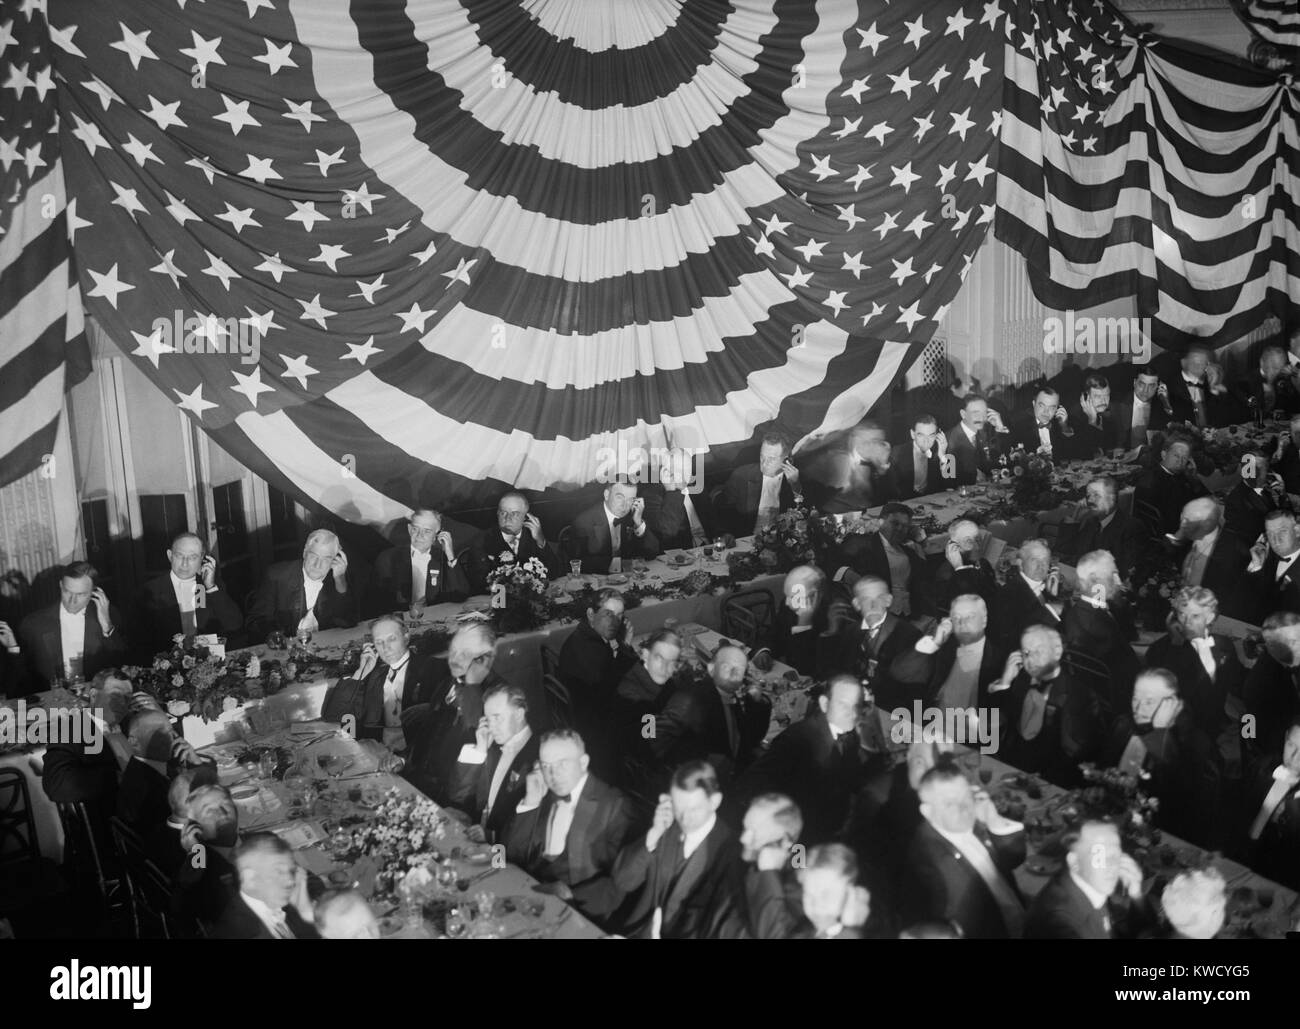 Banquet scene with seated men holding listening devices to their ears, Washington D.C. In 1915 loud speakers were Stock Photo